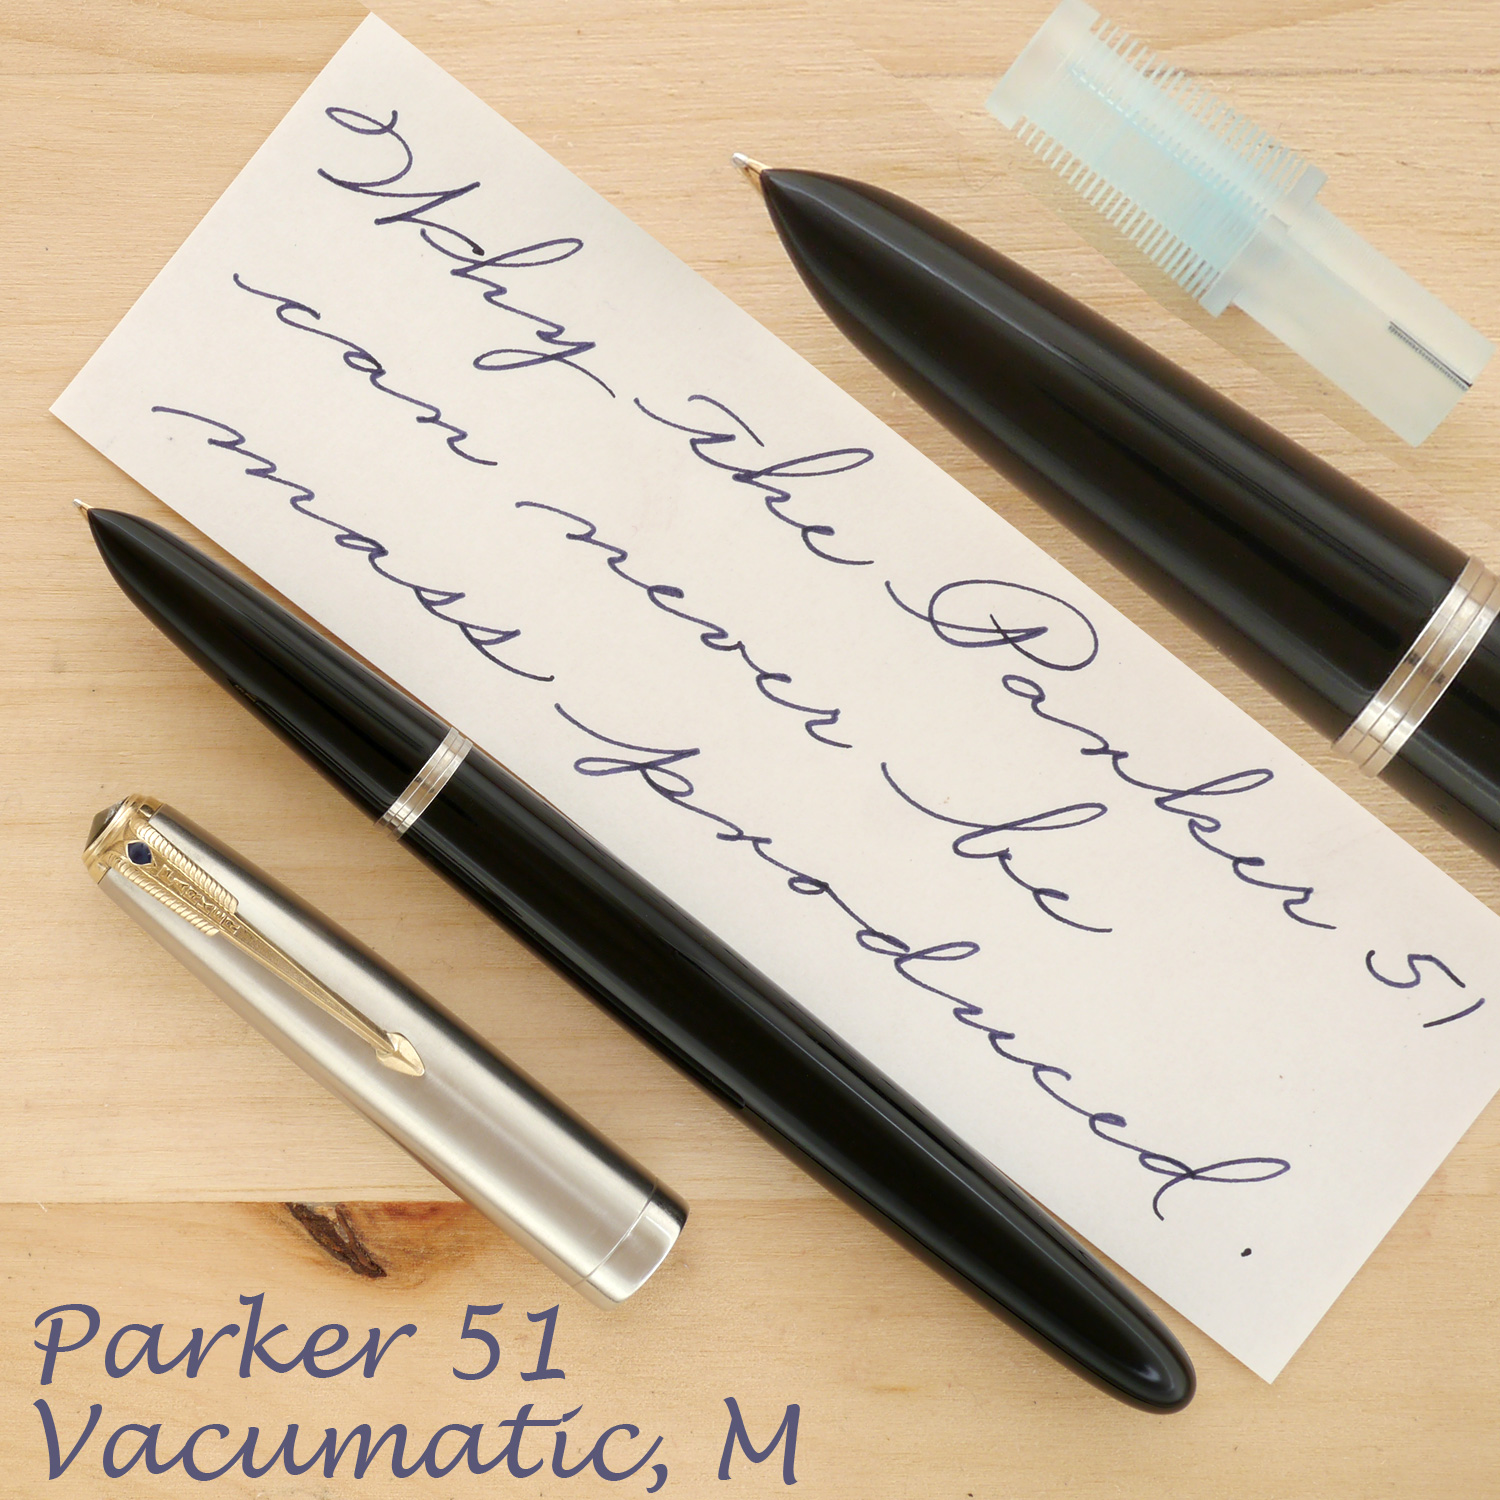 Parker 51 Vacumatic, Black, M, uncapped, also showing the hand-machined collector